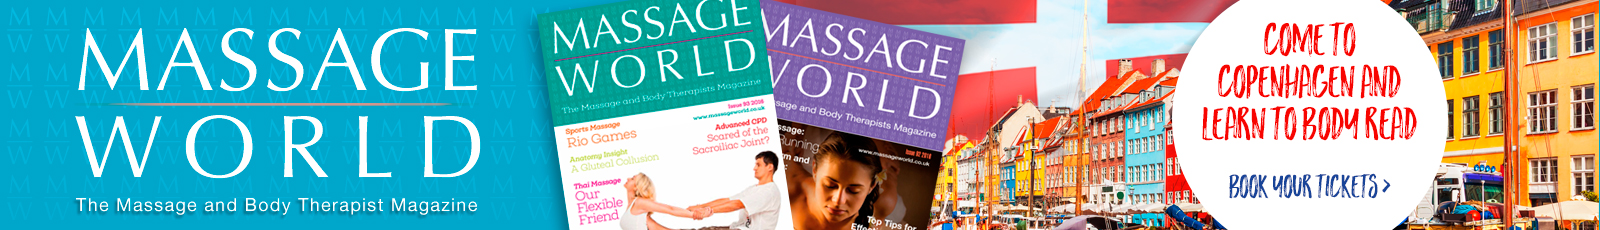 massage world header